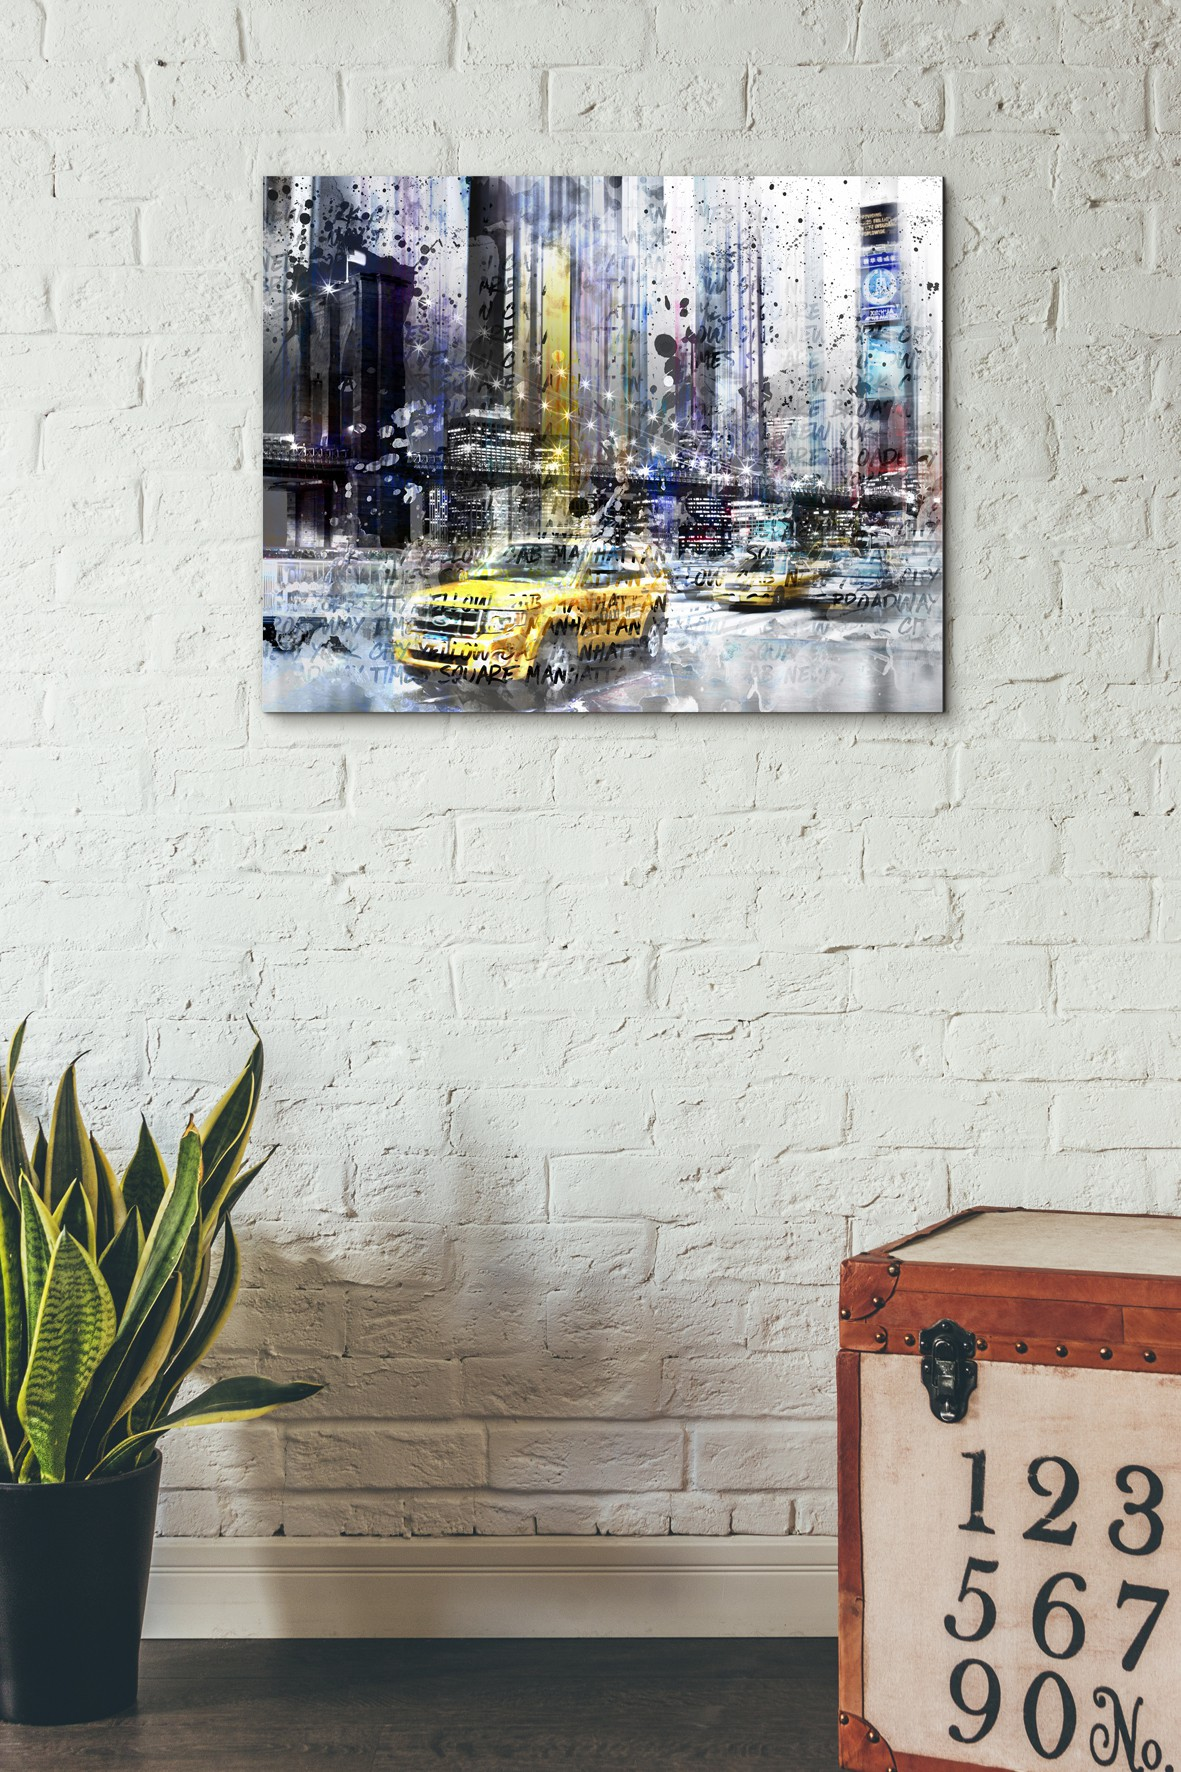 City-Art NYC Collage - OhMyPrints Onlineshop